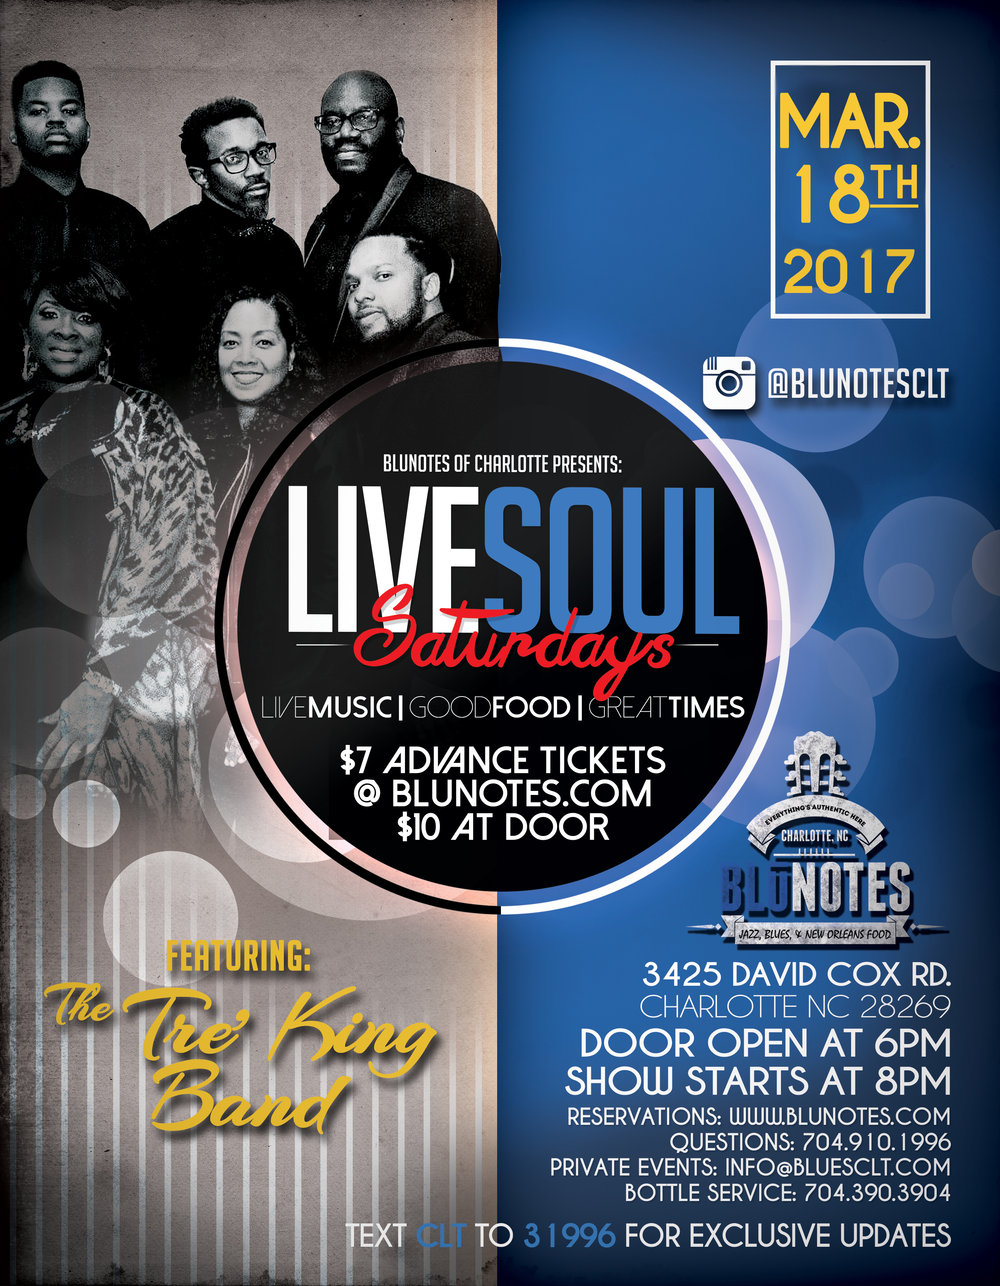 Tre-King_Live-Soul-Saturdays_MAR_Web.jpg